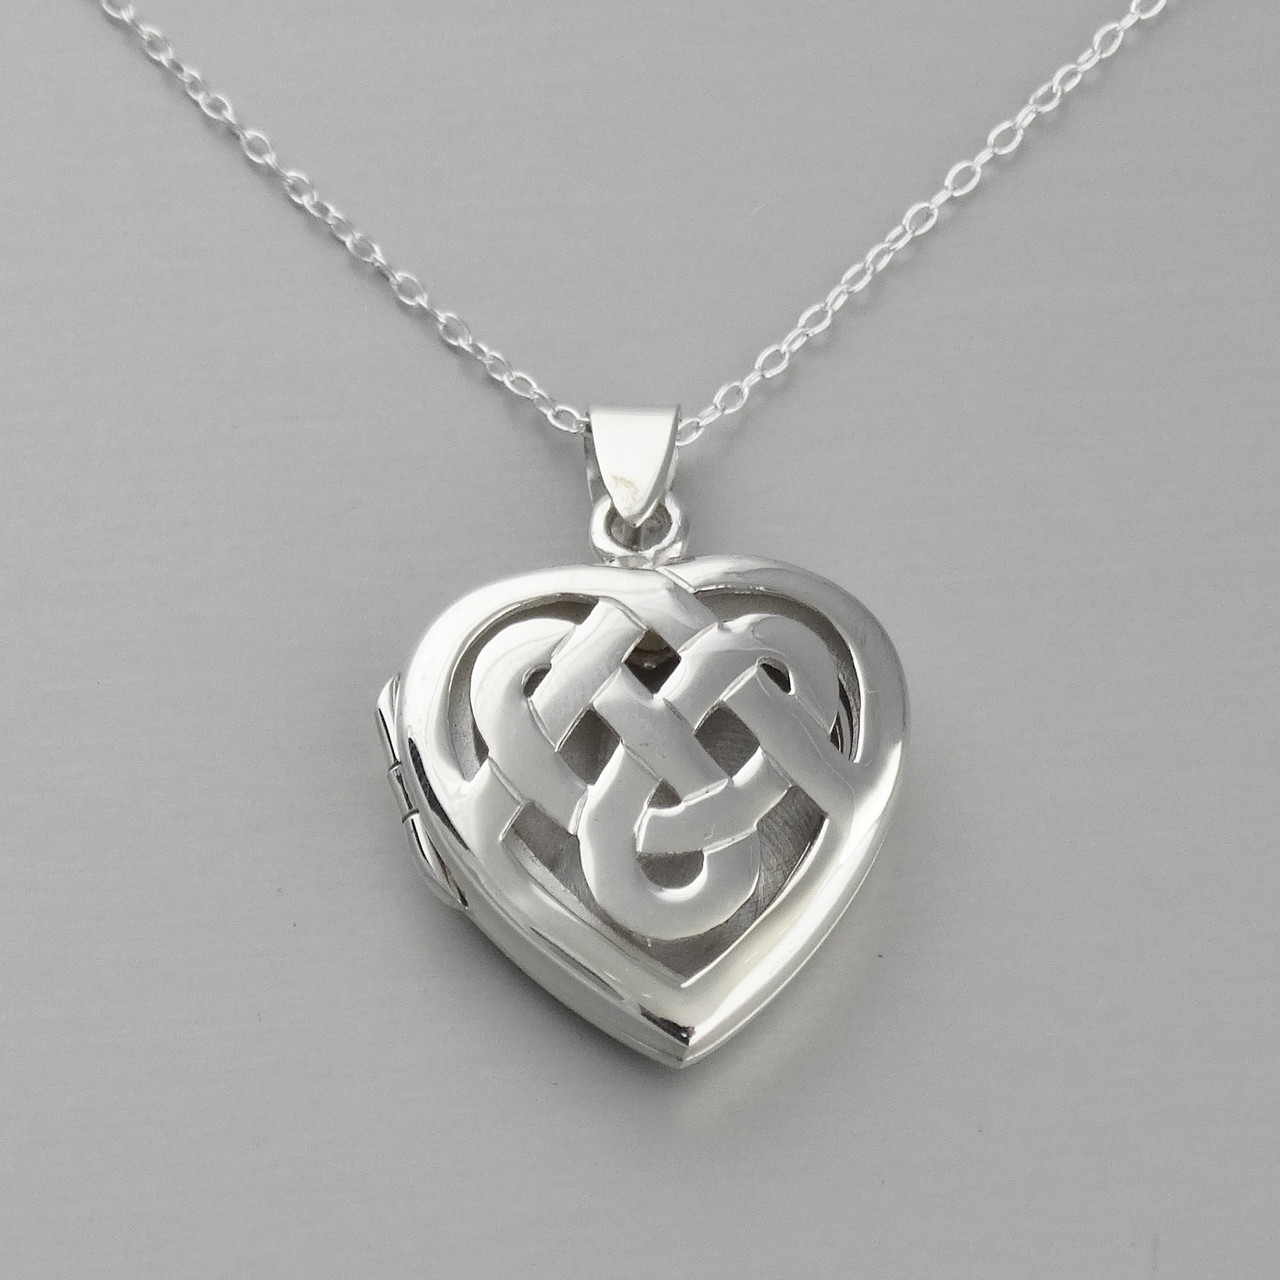 ab22f145df501 Sterling Silver Celtic Knot Heart Locket Necklace